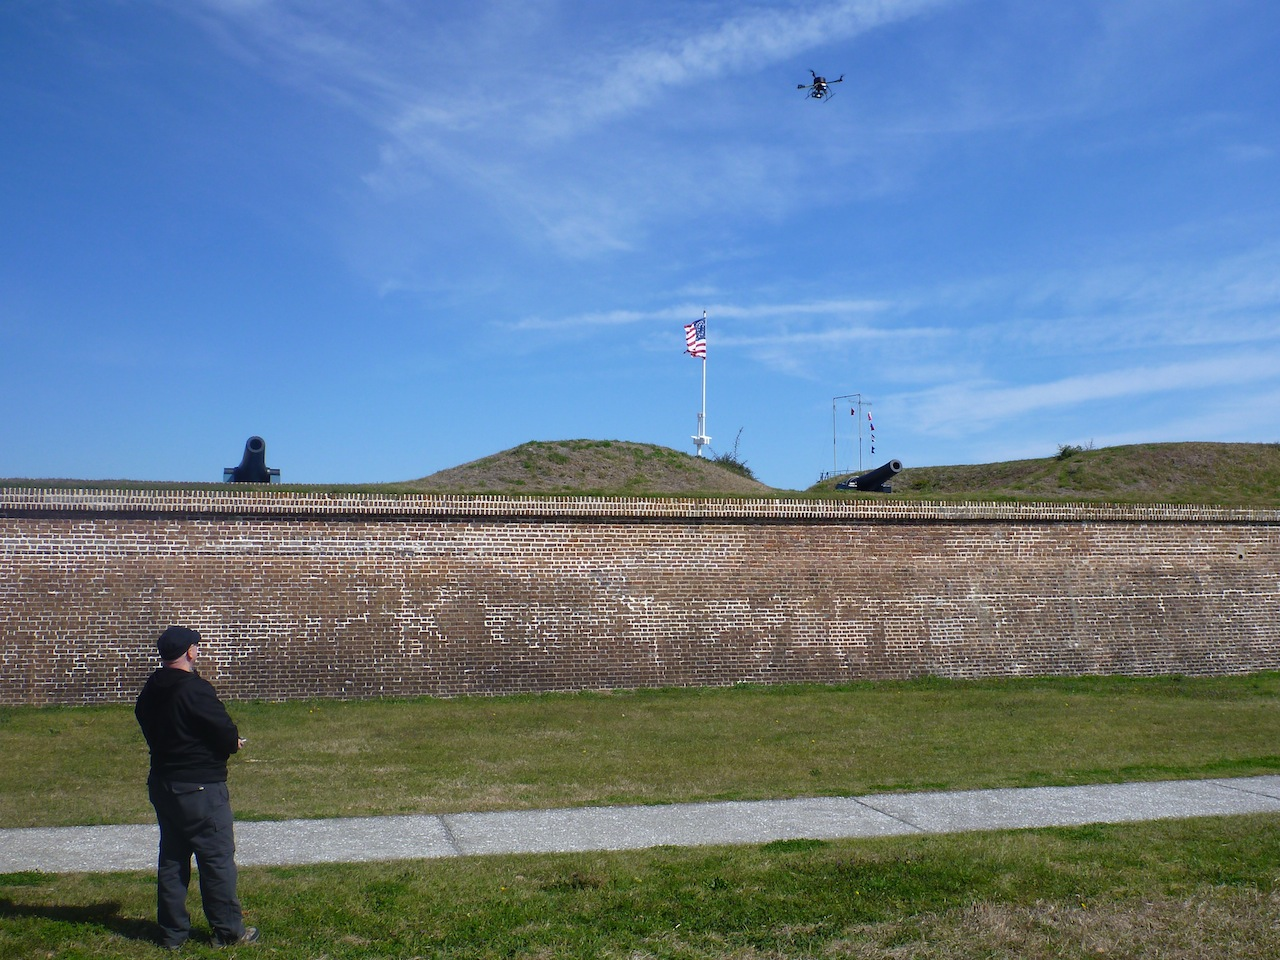 David Flying The Quadcopter Just Outside The Fort